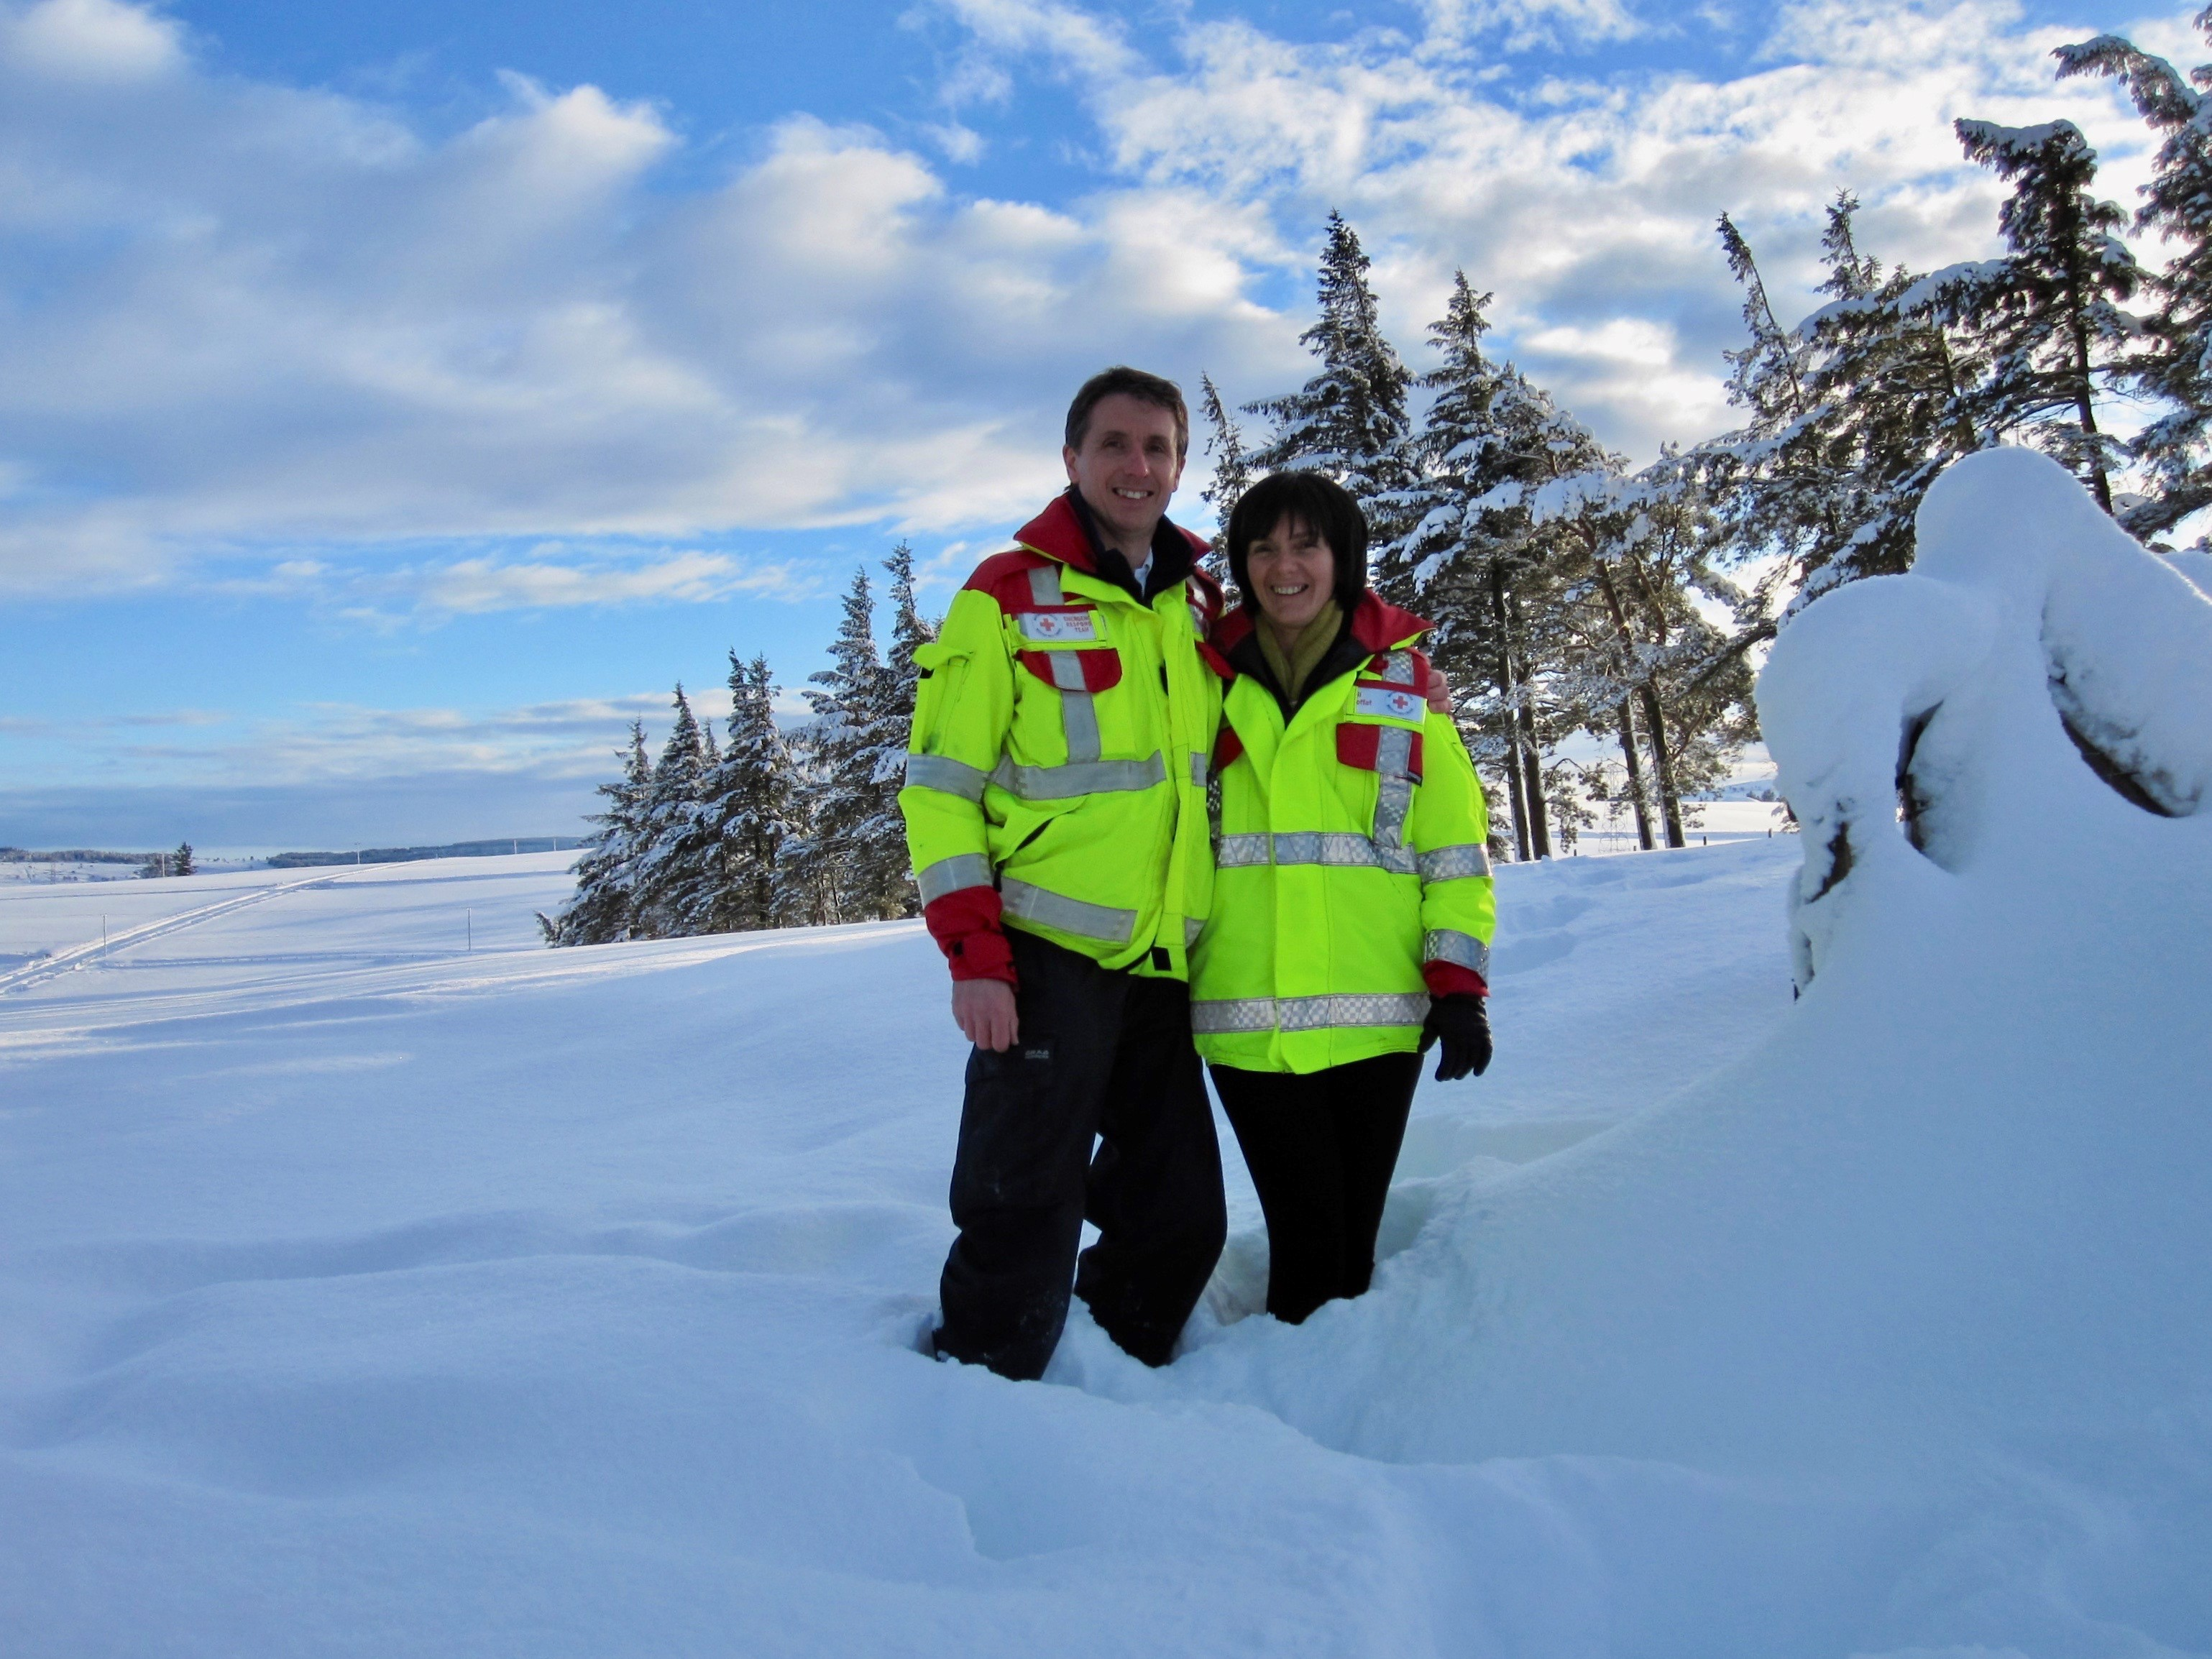 Colin Moffat and wife Gill in January 2010 responding in Keith, Aberdeenshire to severe snow conditions.